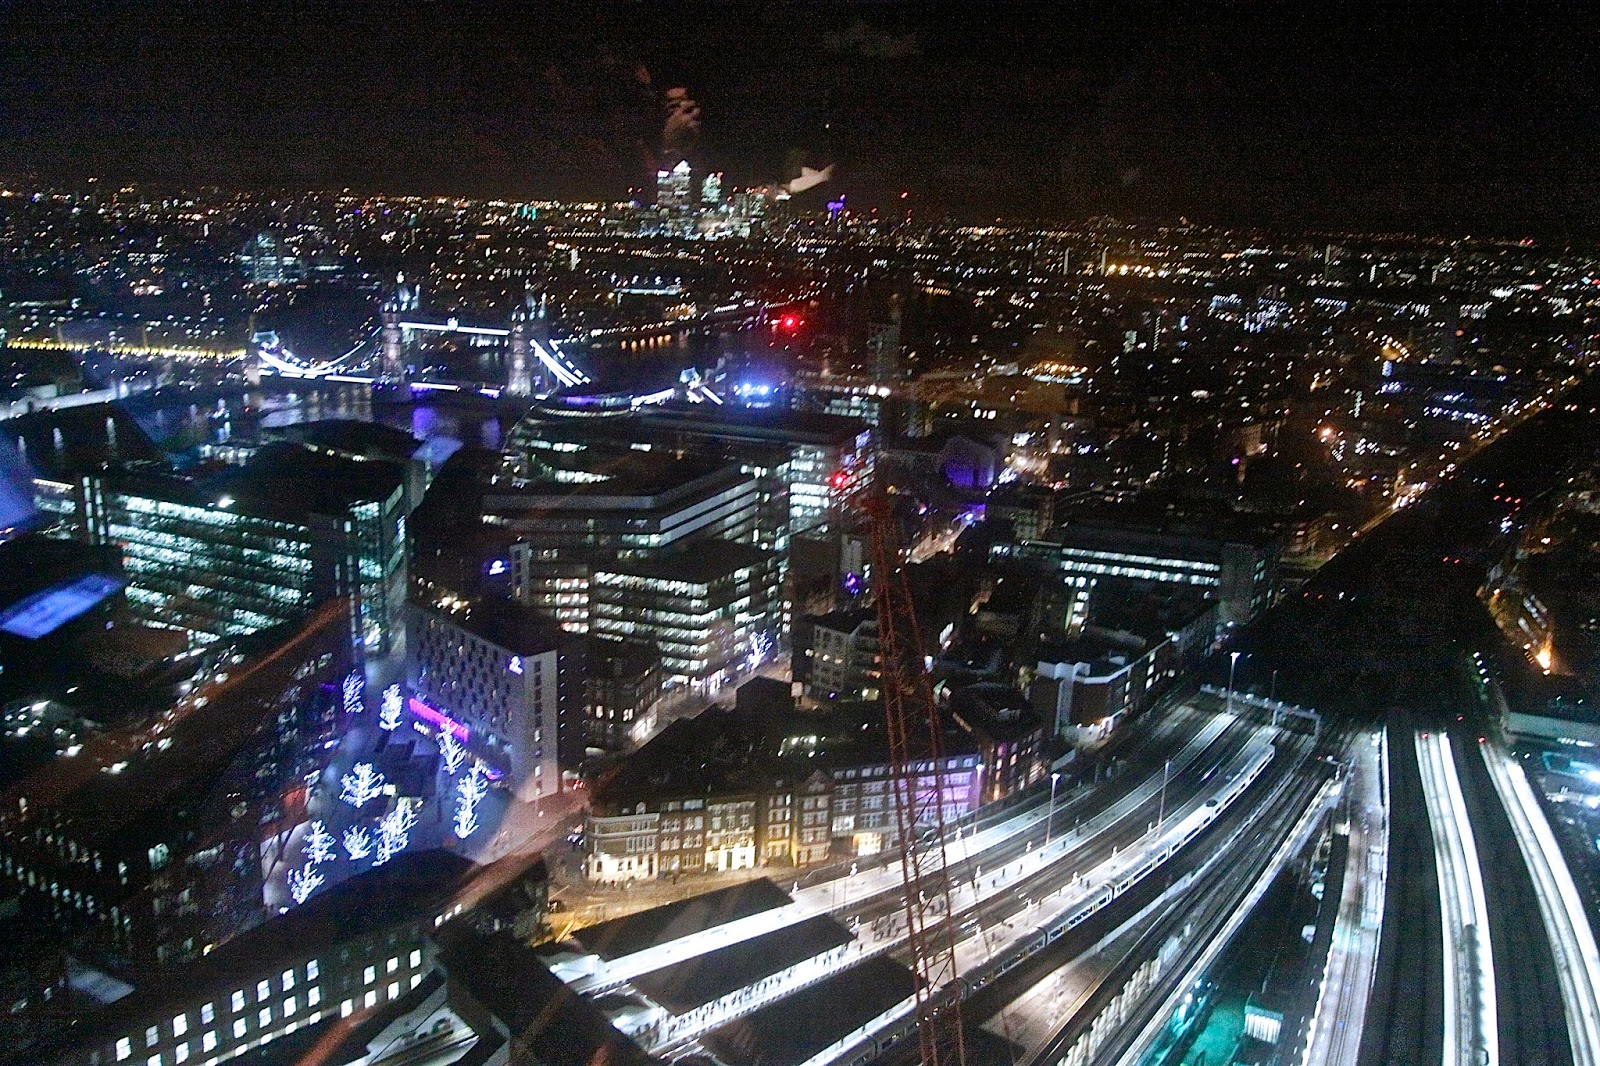 Oblix Restaurant At The Shard, A Creation Of Zuma Owners